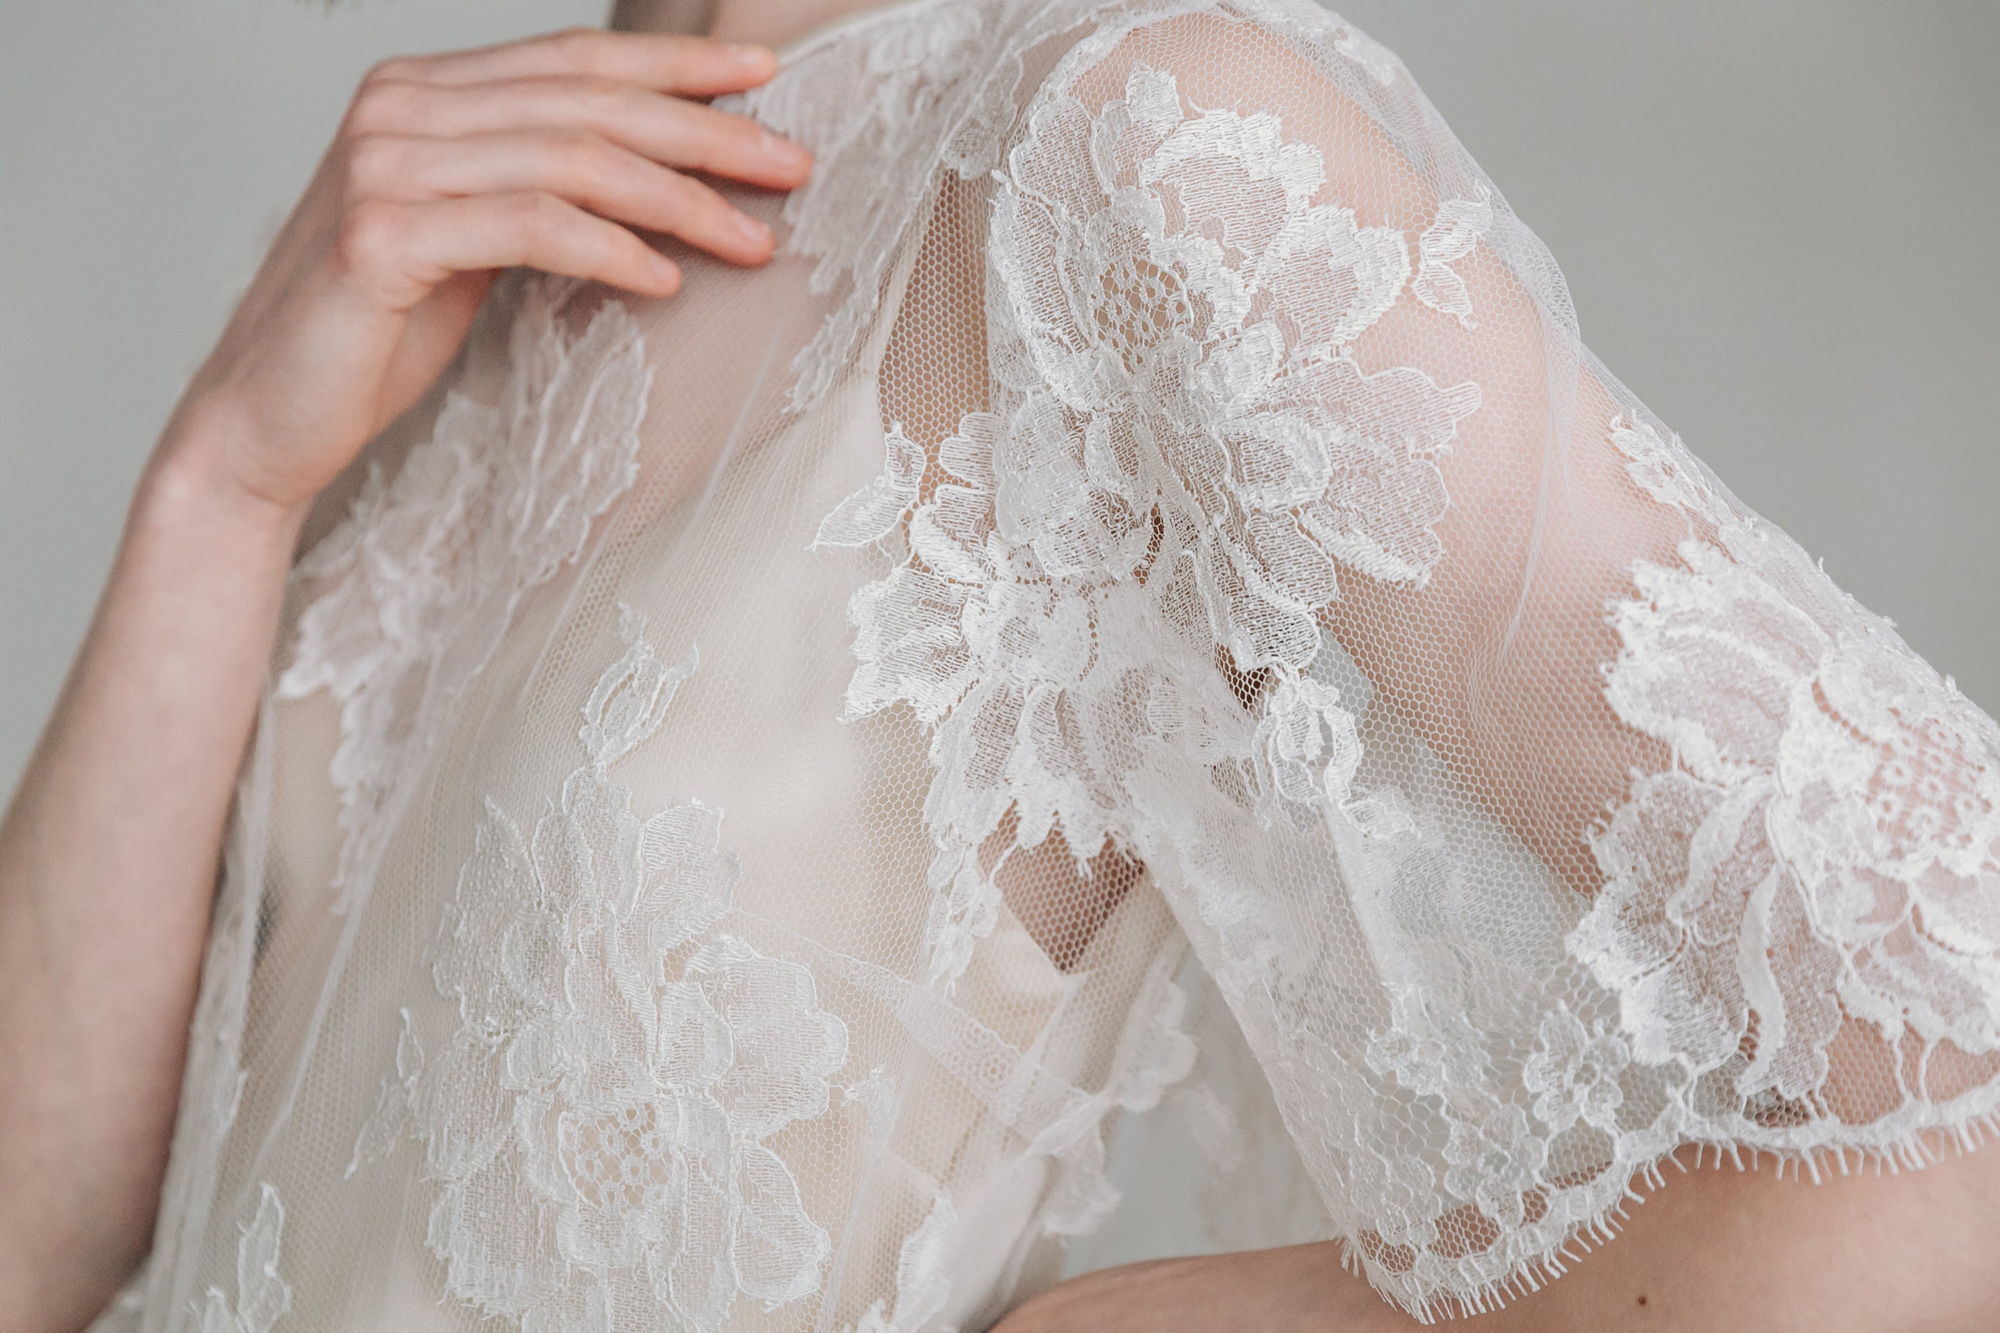 Kate-Beaumont-Sheffield-Rosa-Floral-Lace-Jacket-Thistle-Bias-Cut-Pearl-Silk-Wedding-Gown-3.jpg